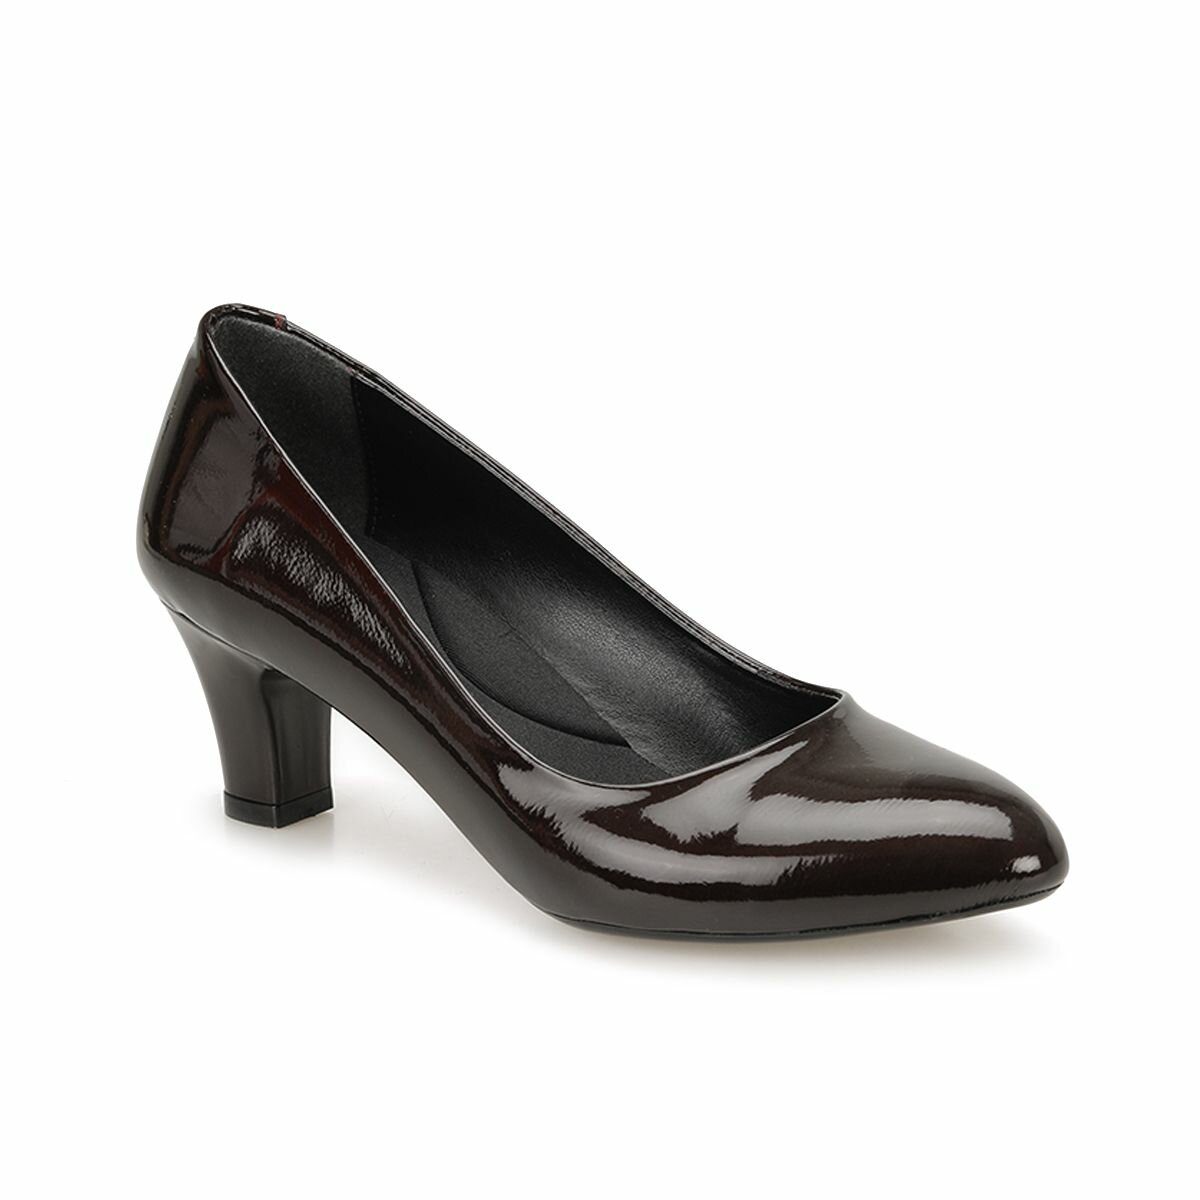 FLO 82.312092RZ Burgundy Women Gova Shoes Polaris